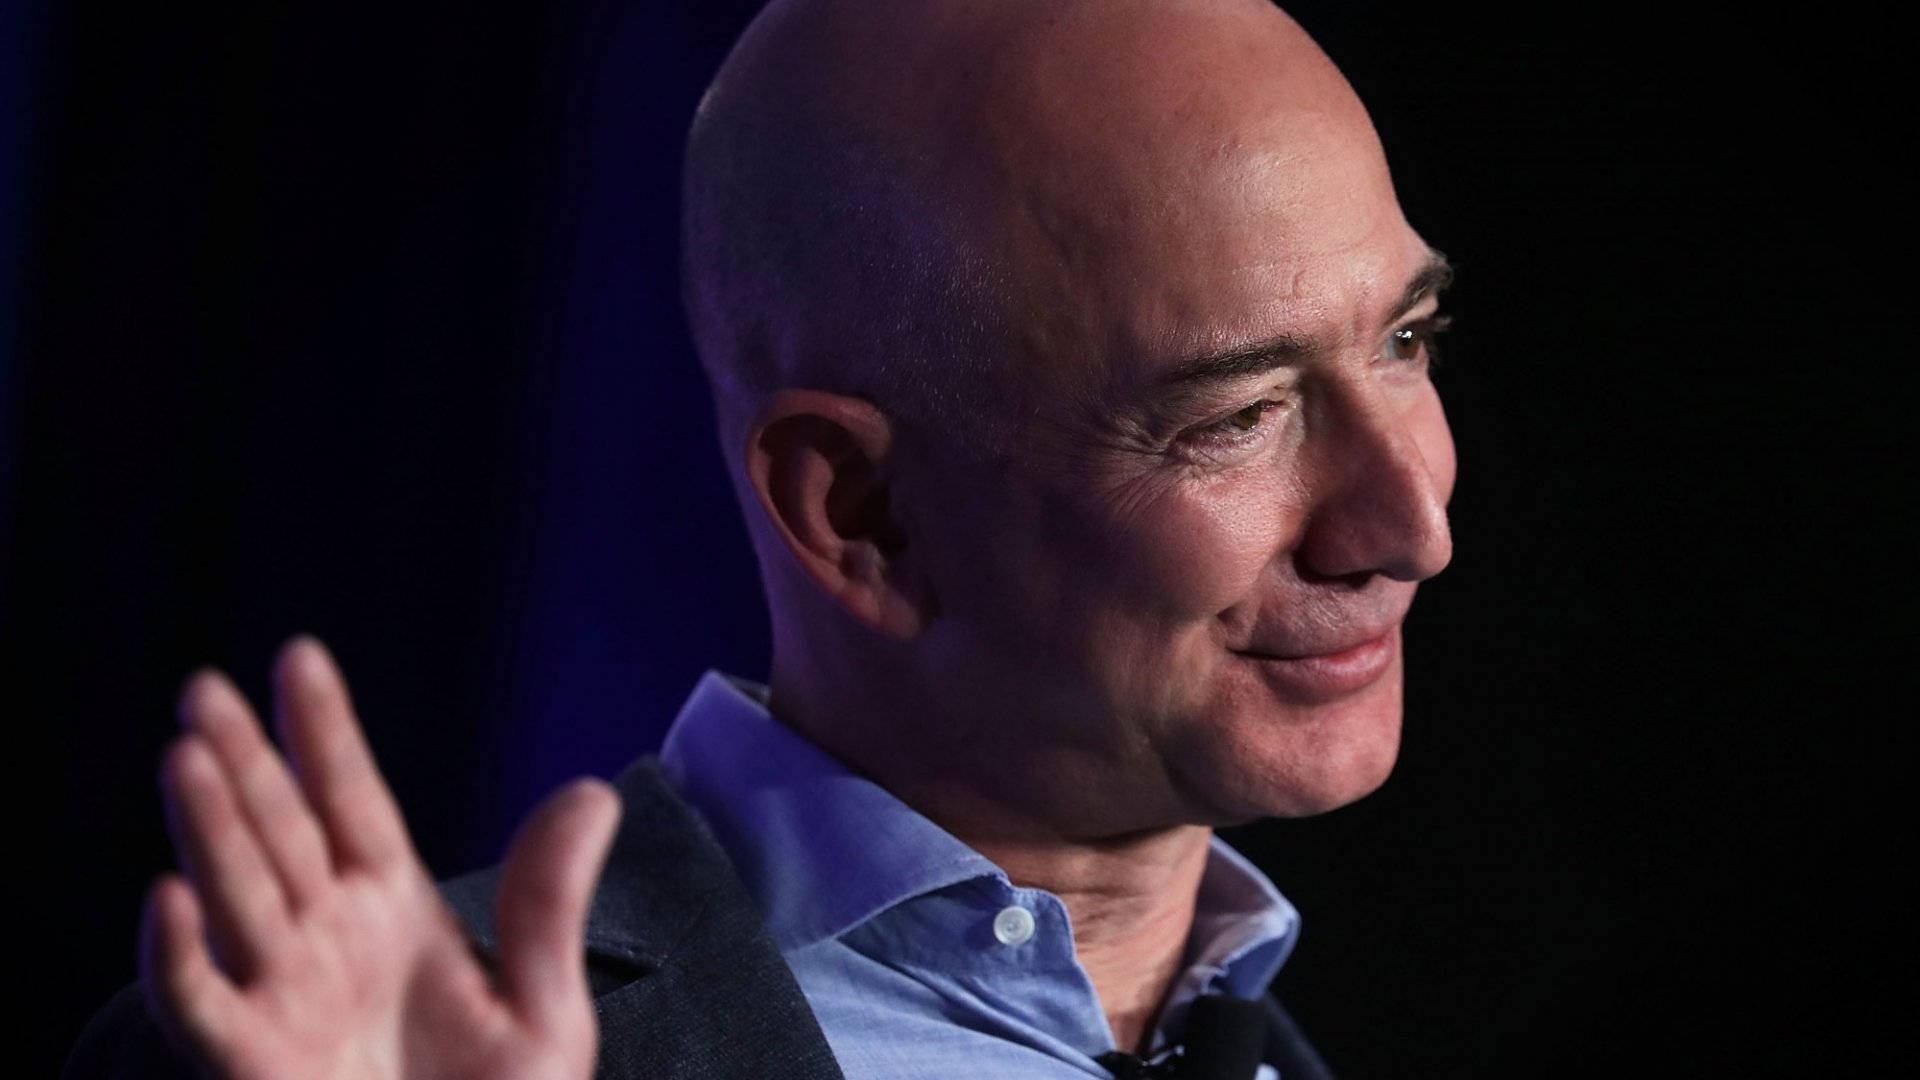 Keep Changing Your Mind? According to Jeff Bezos, That's a Sign of High Intelligence